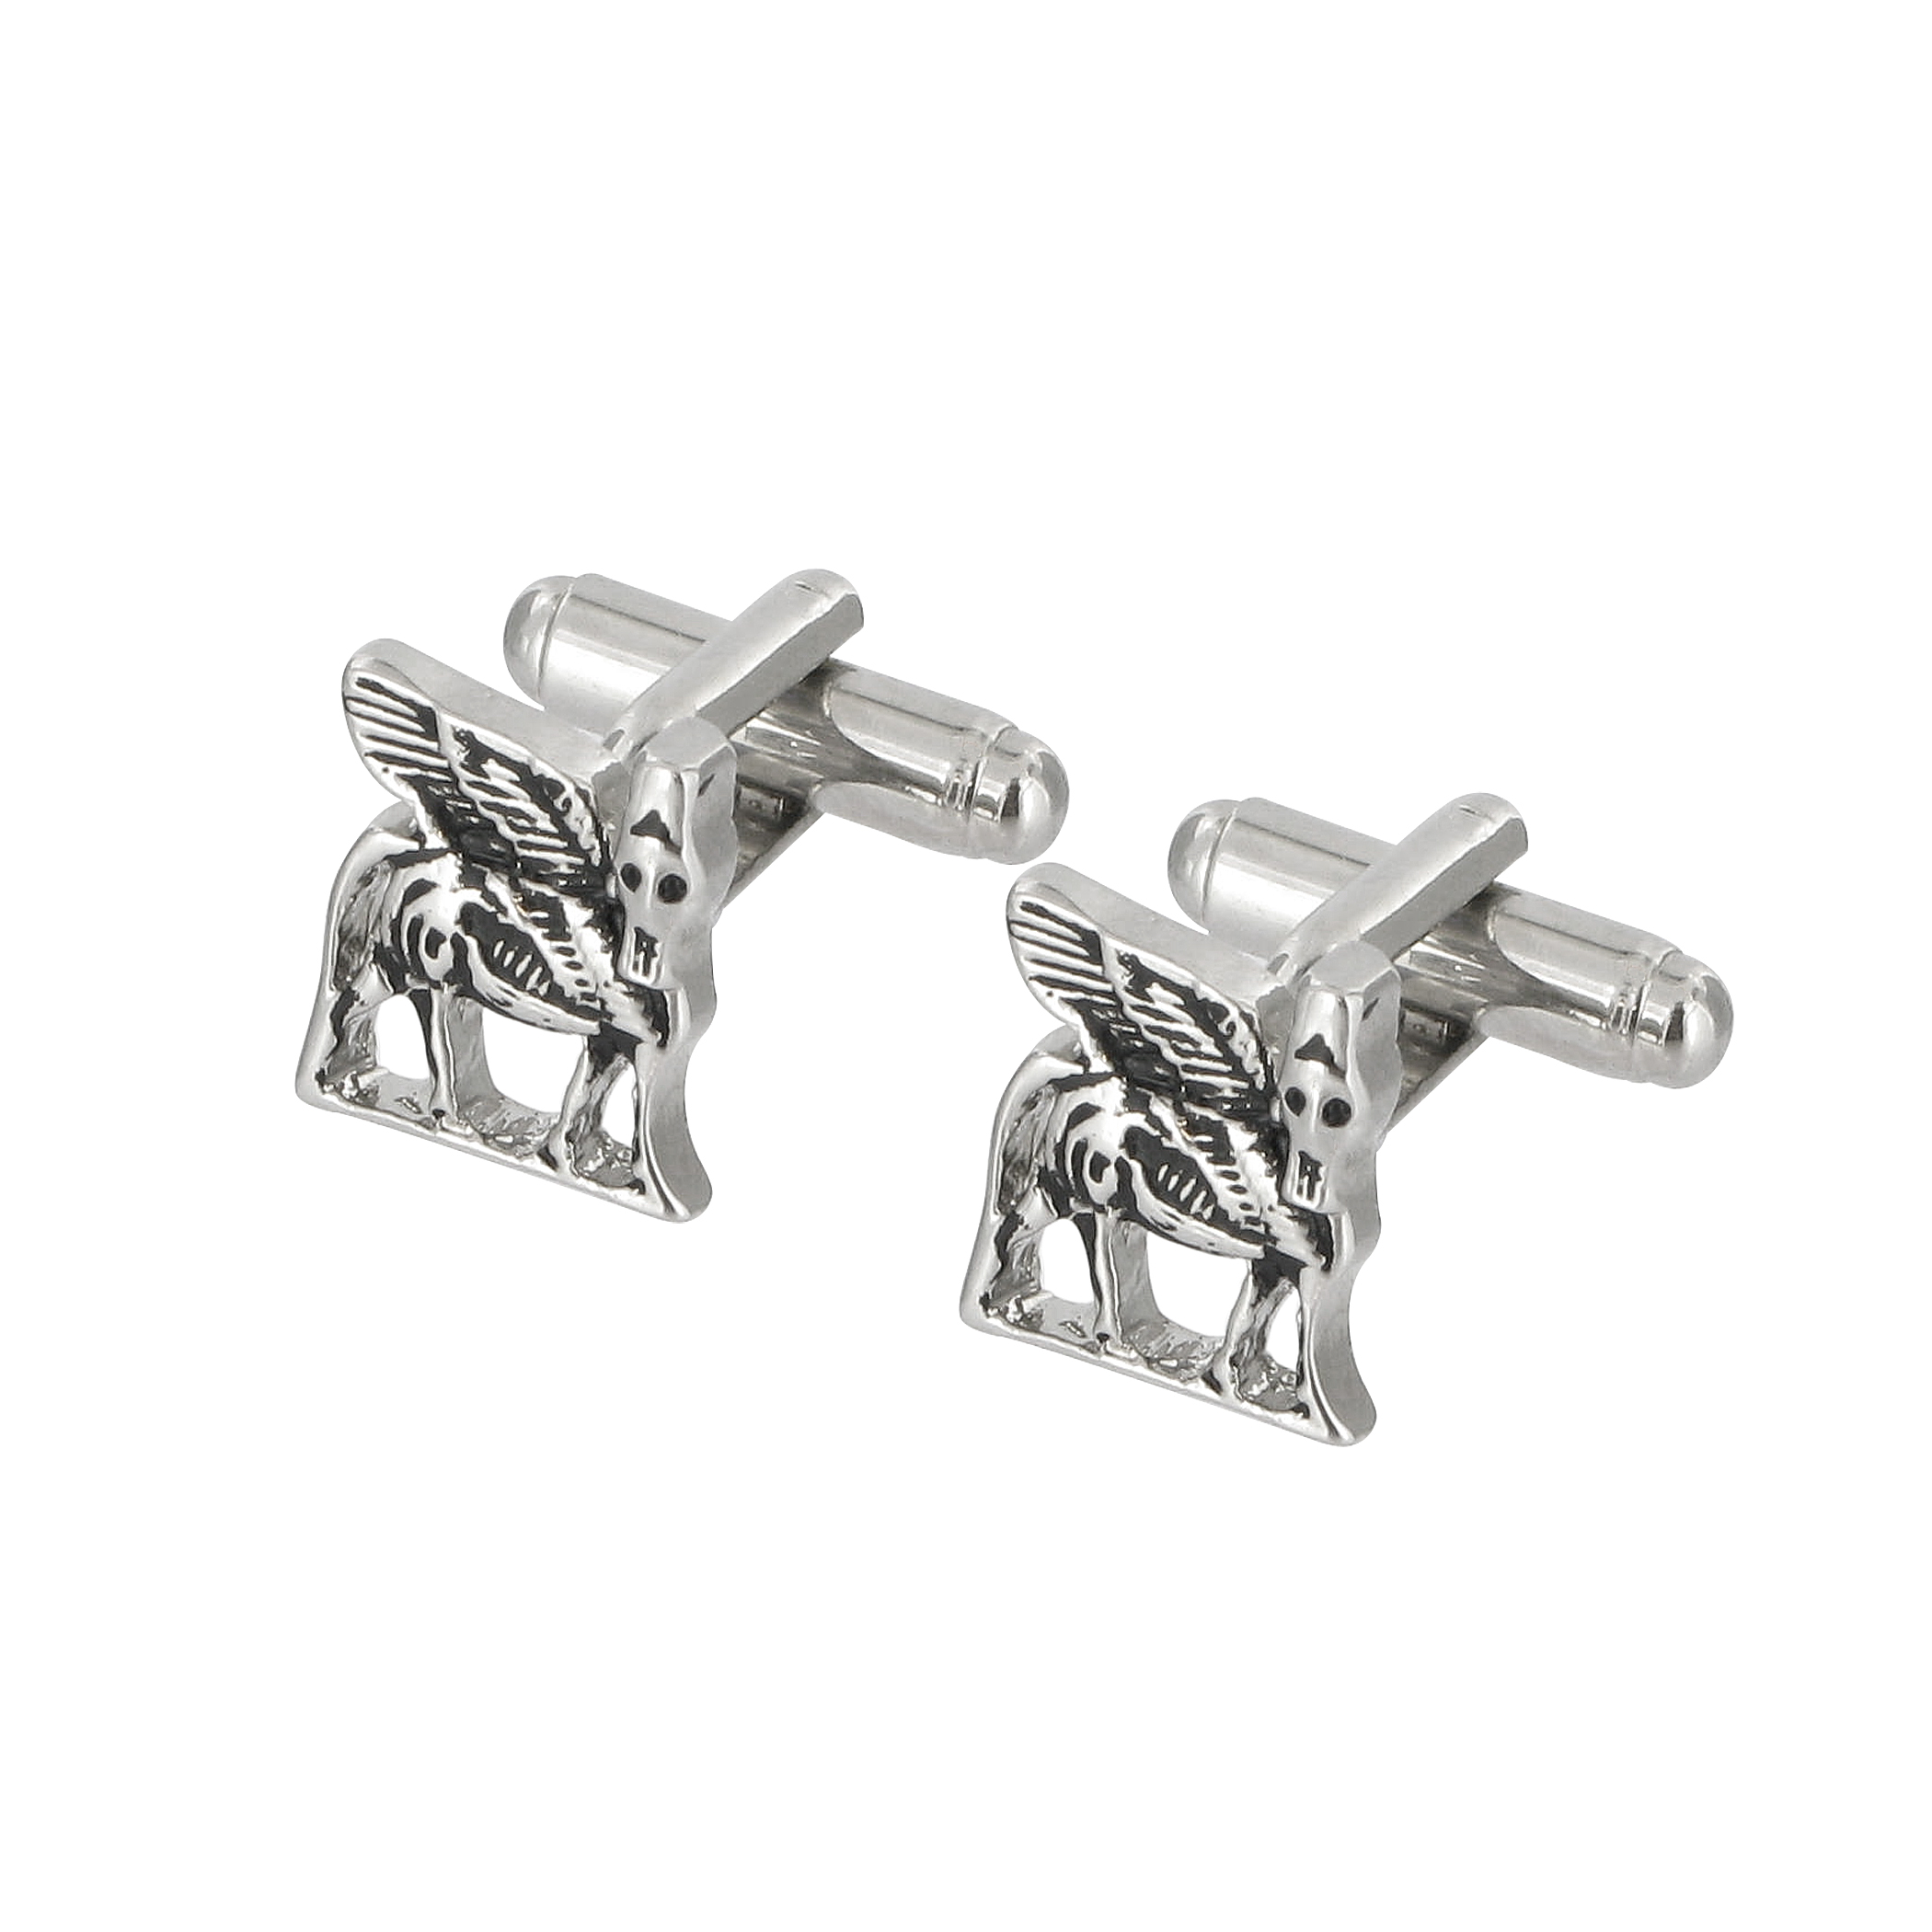 Winged bull cufflinks